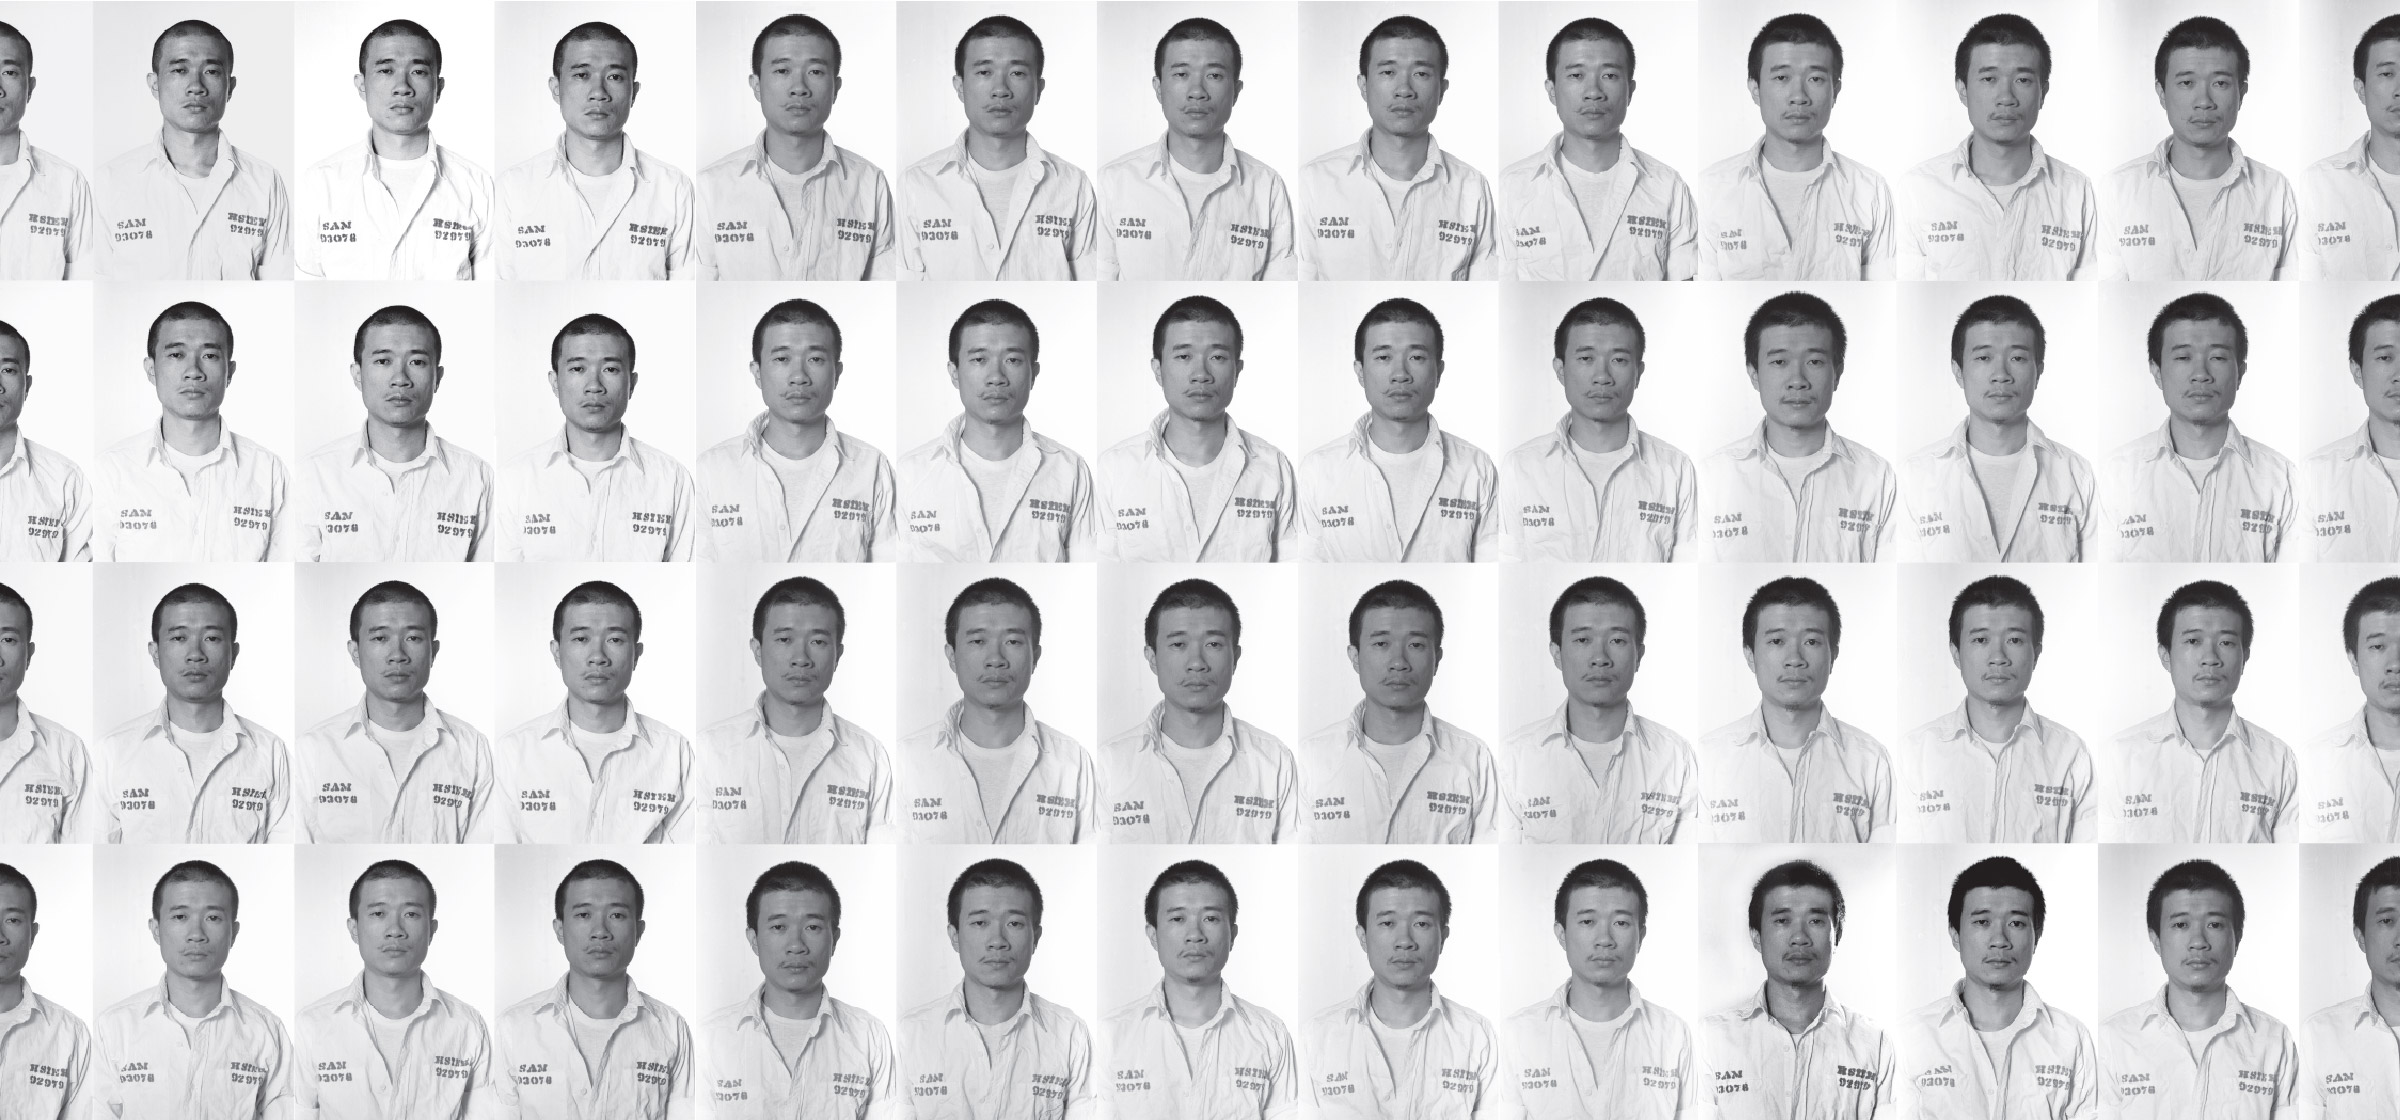 Several black and white portrait photos of Tehching Hsieh from his book Out of Now